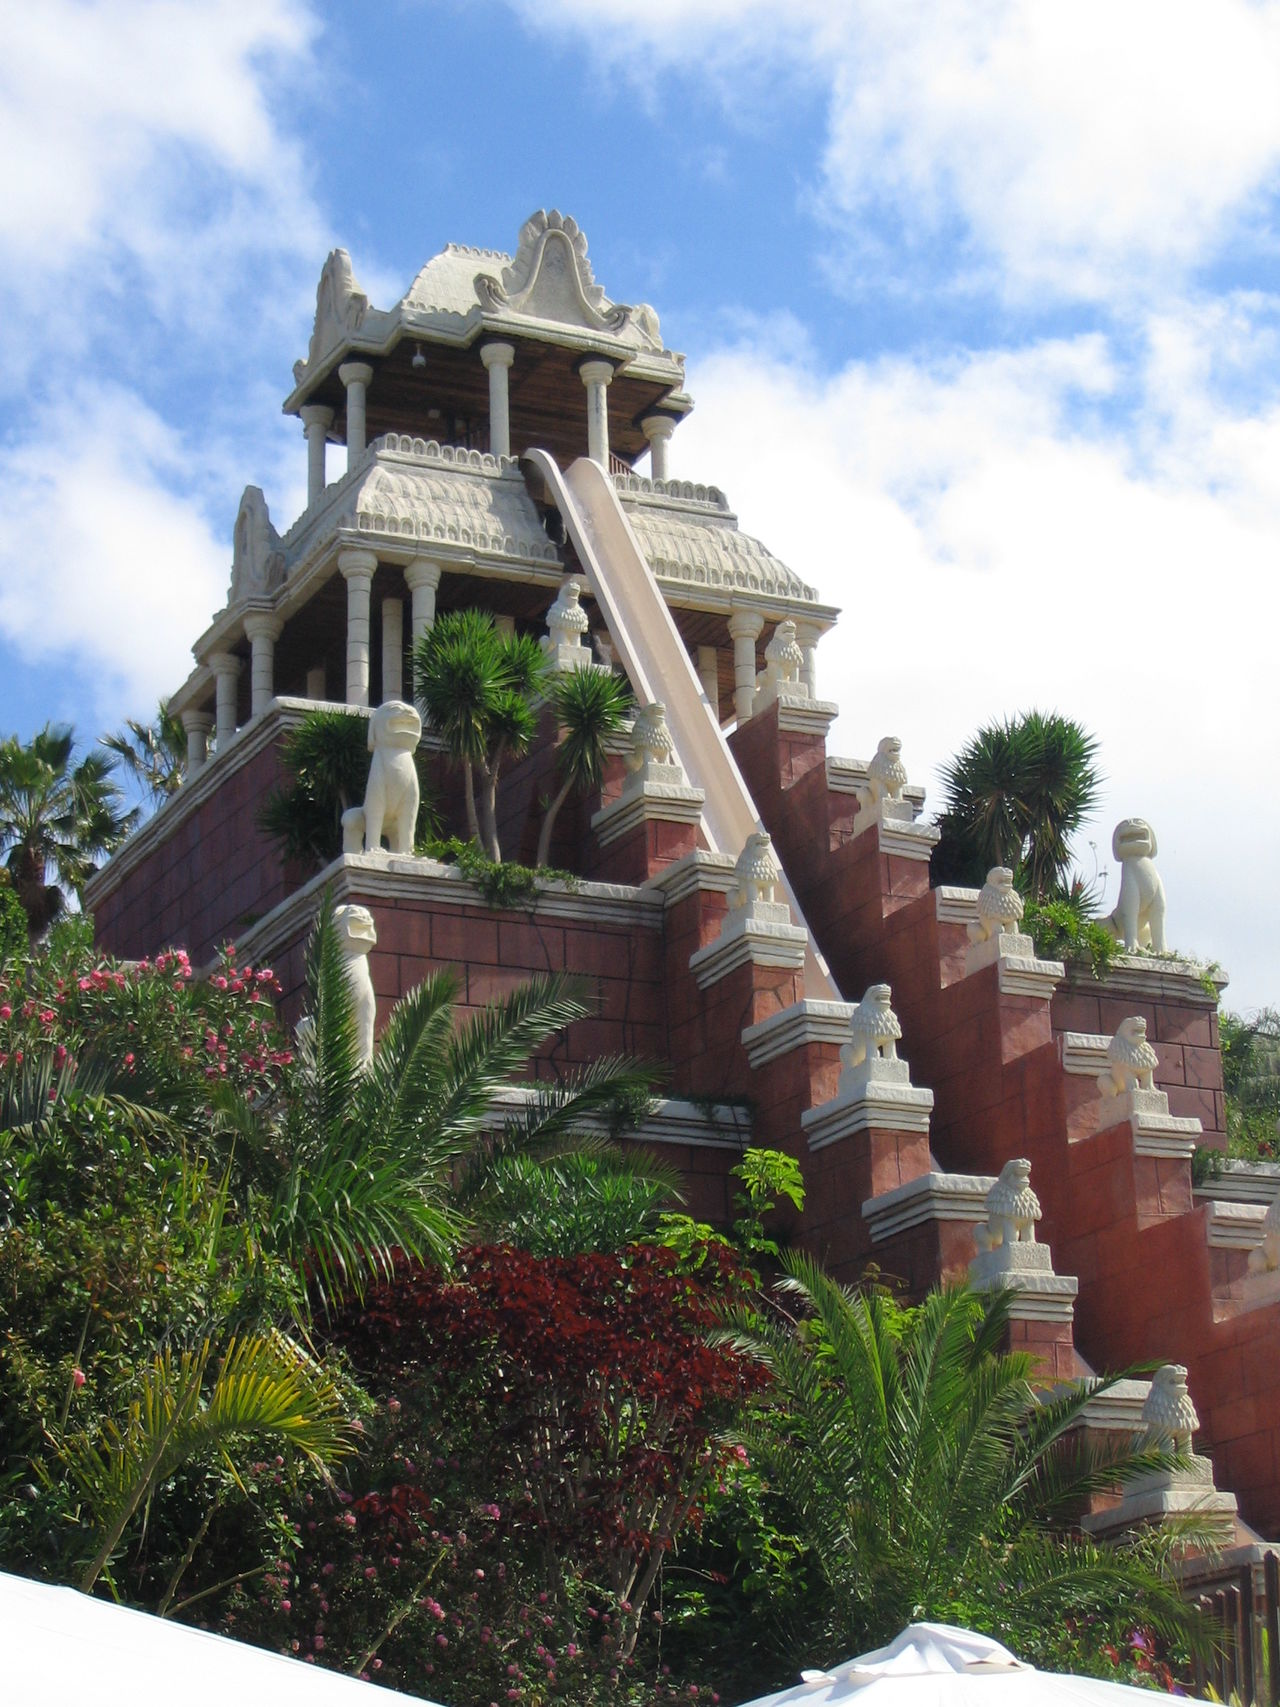 Travel Destinations Travel Vacation Time Sunny Days Sunny Day Tourist Attraction  Tenerife España Where To Go Building Exterior Aquapark Siampark Water Slides Lions Sky